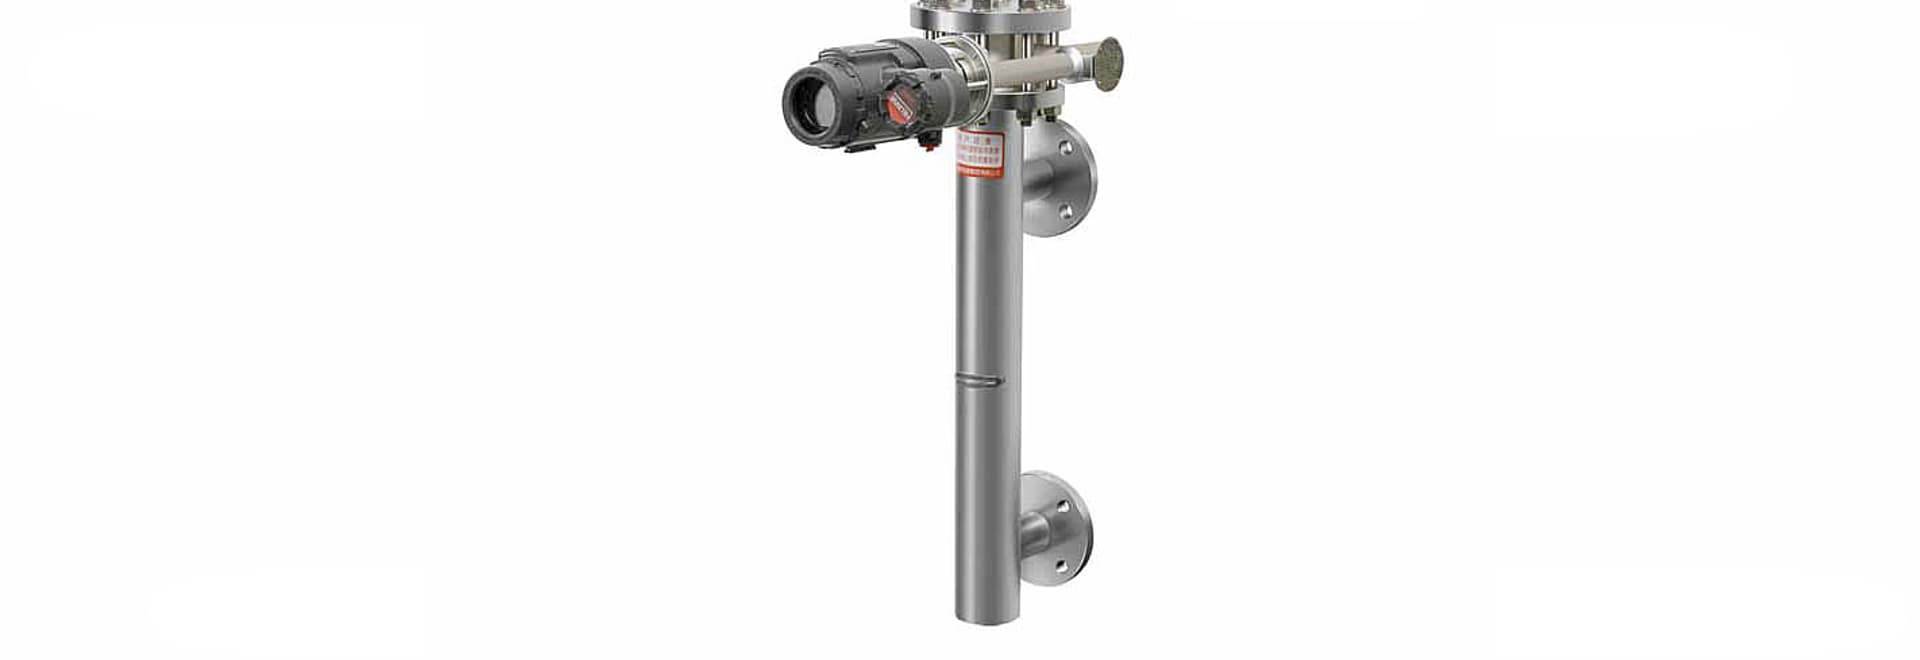 Displacer level transmitter--DDTOP&FISHER